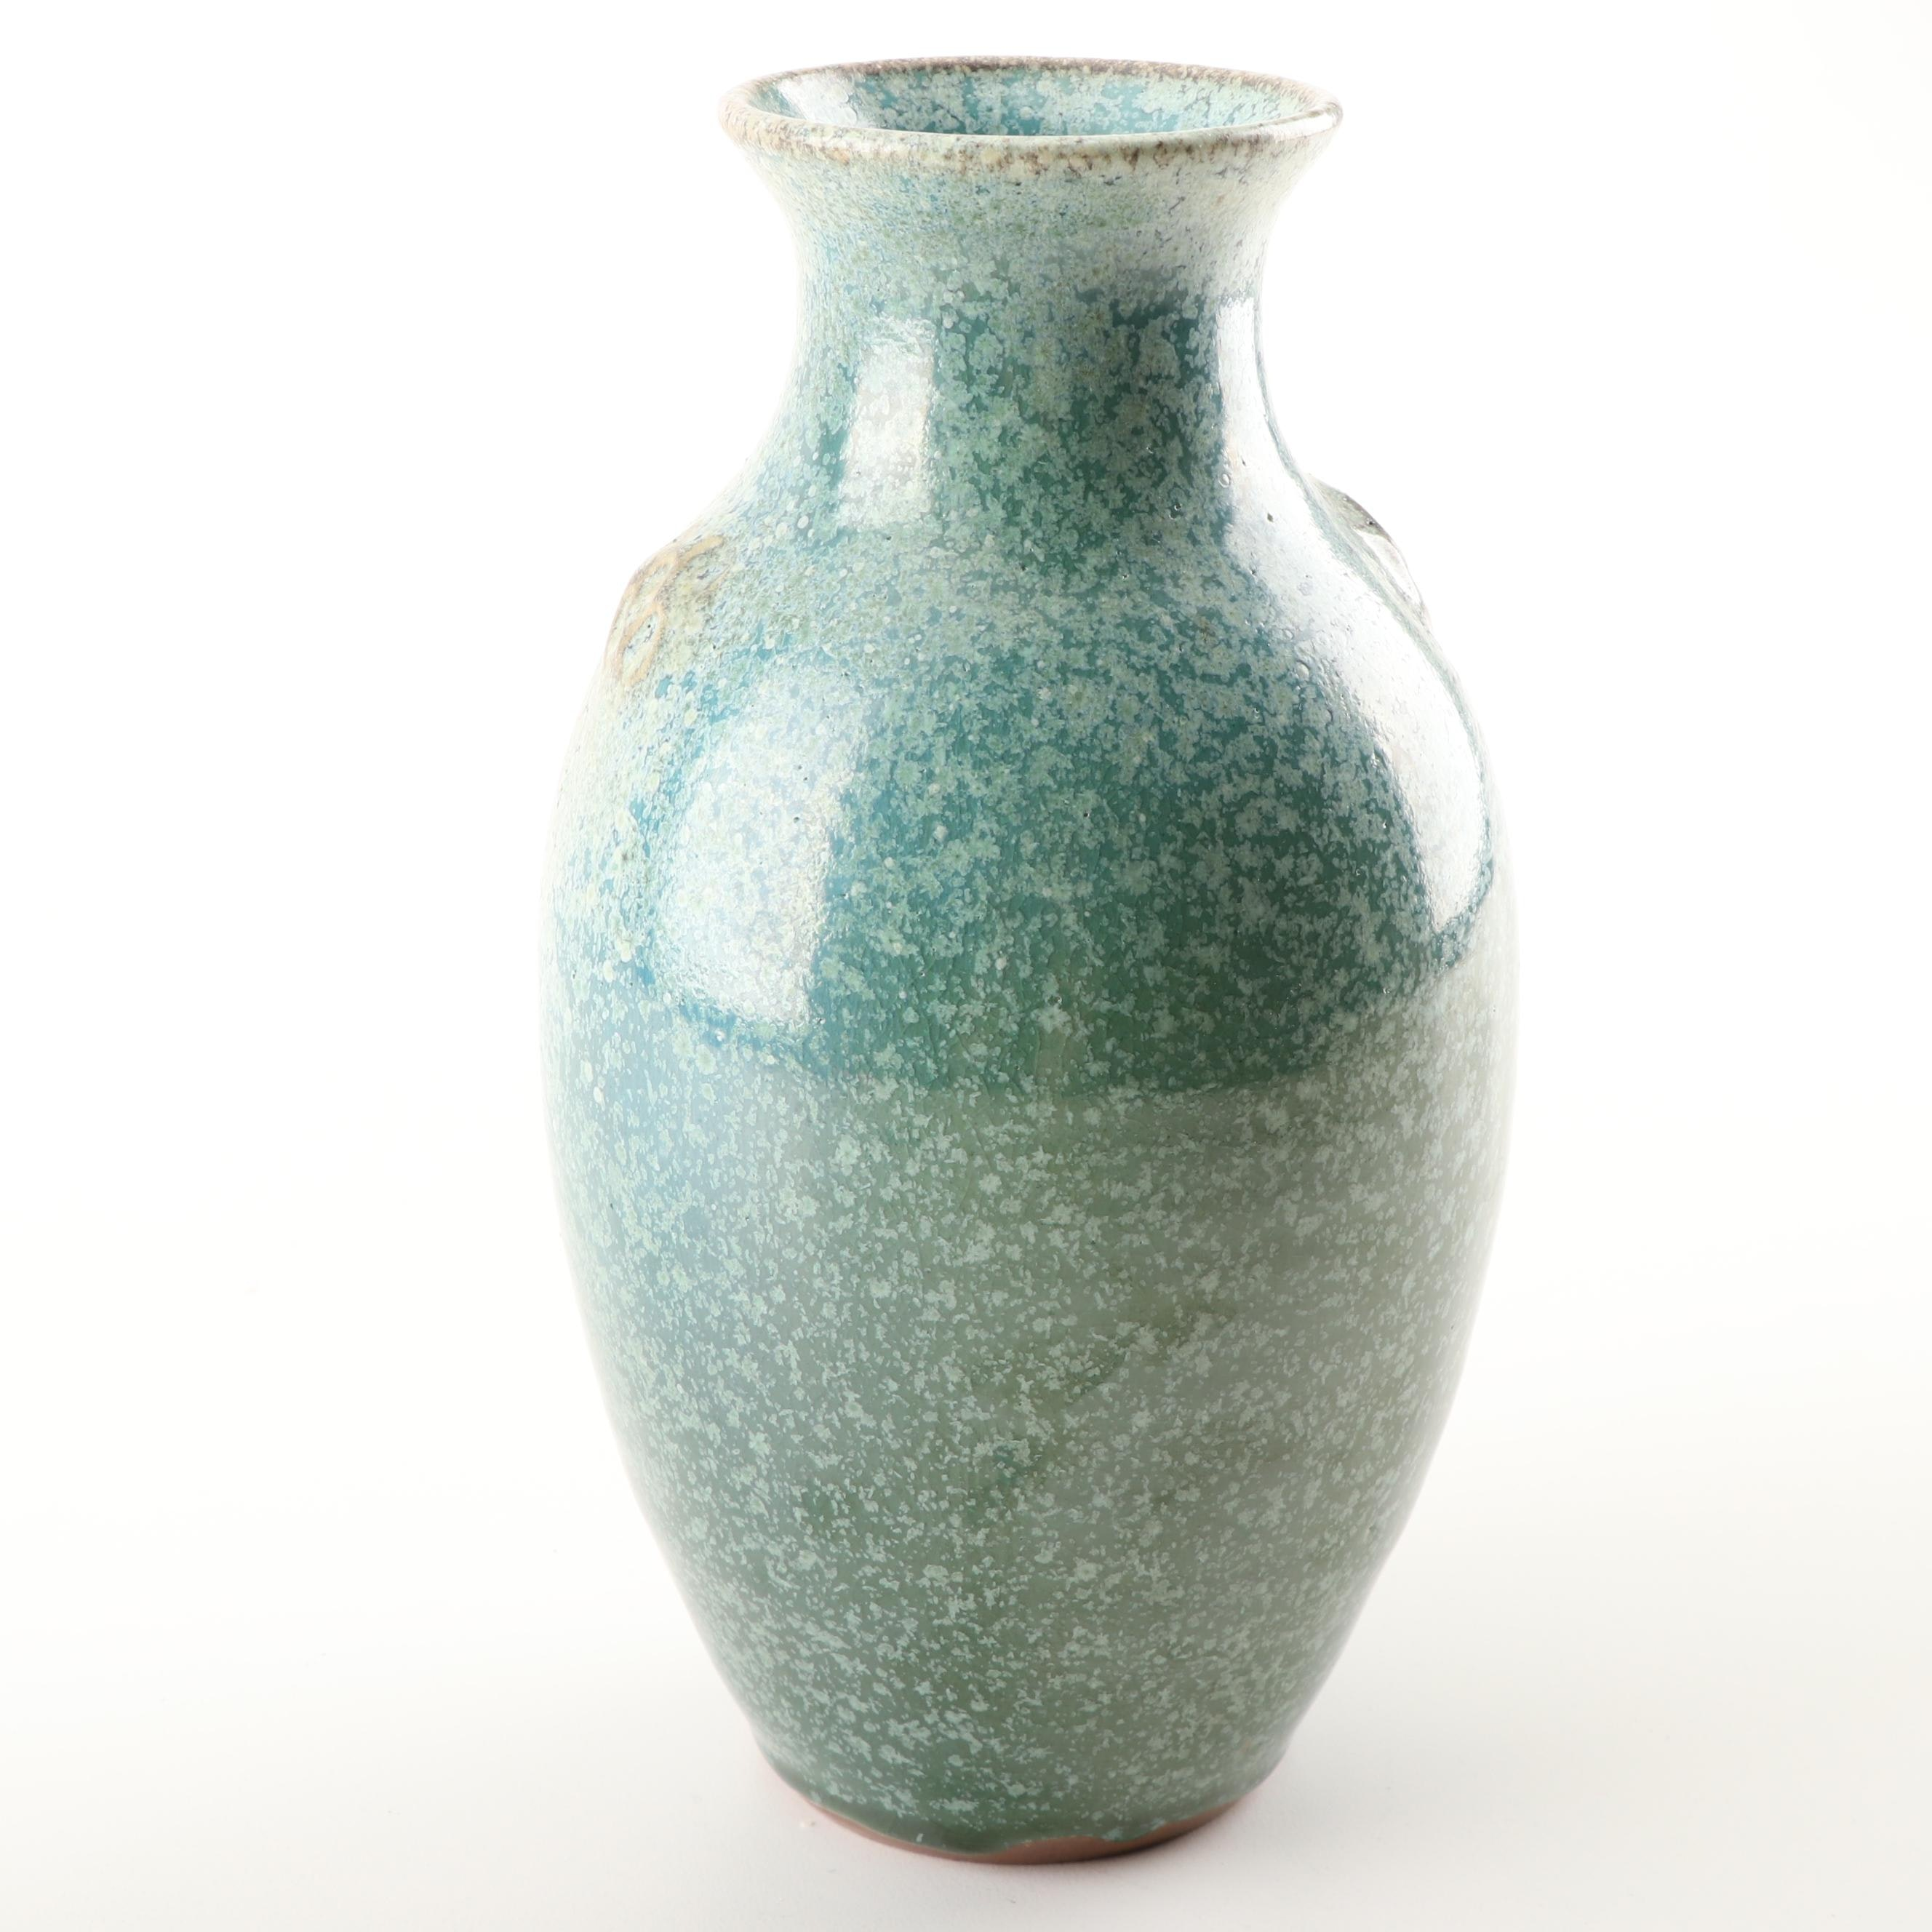 Wheel Thrown Salt Glaze Vase by Ben Owen III of Seagrove, NC